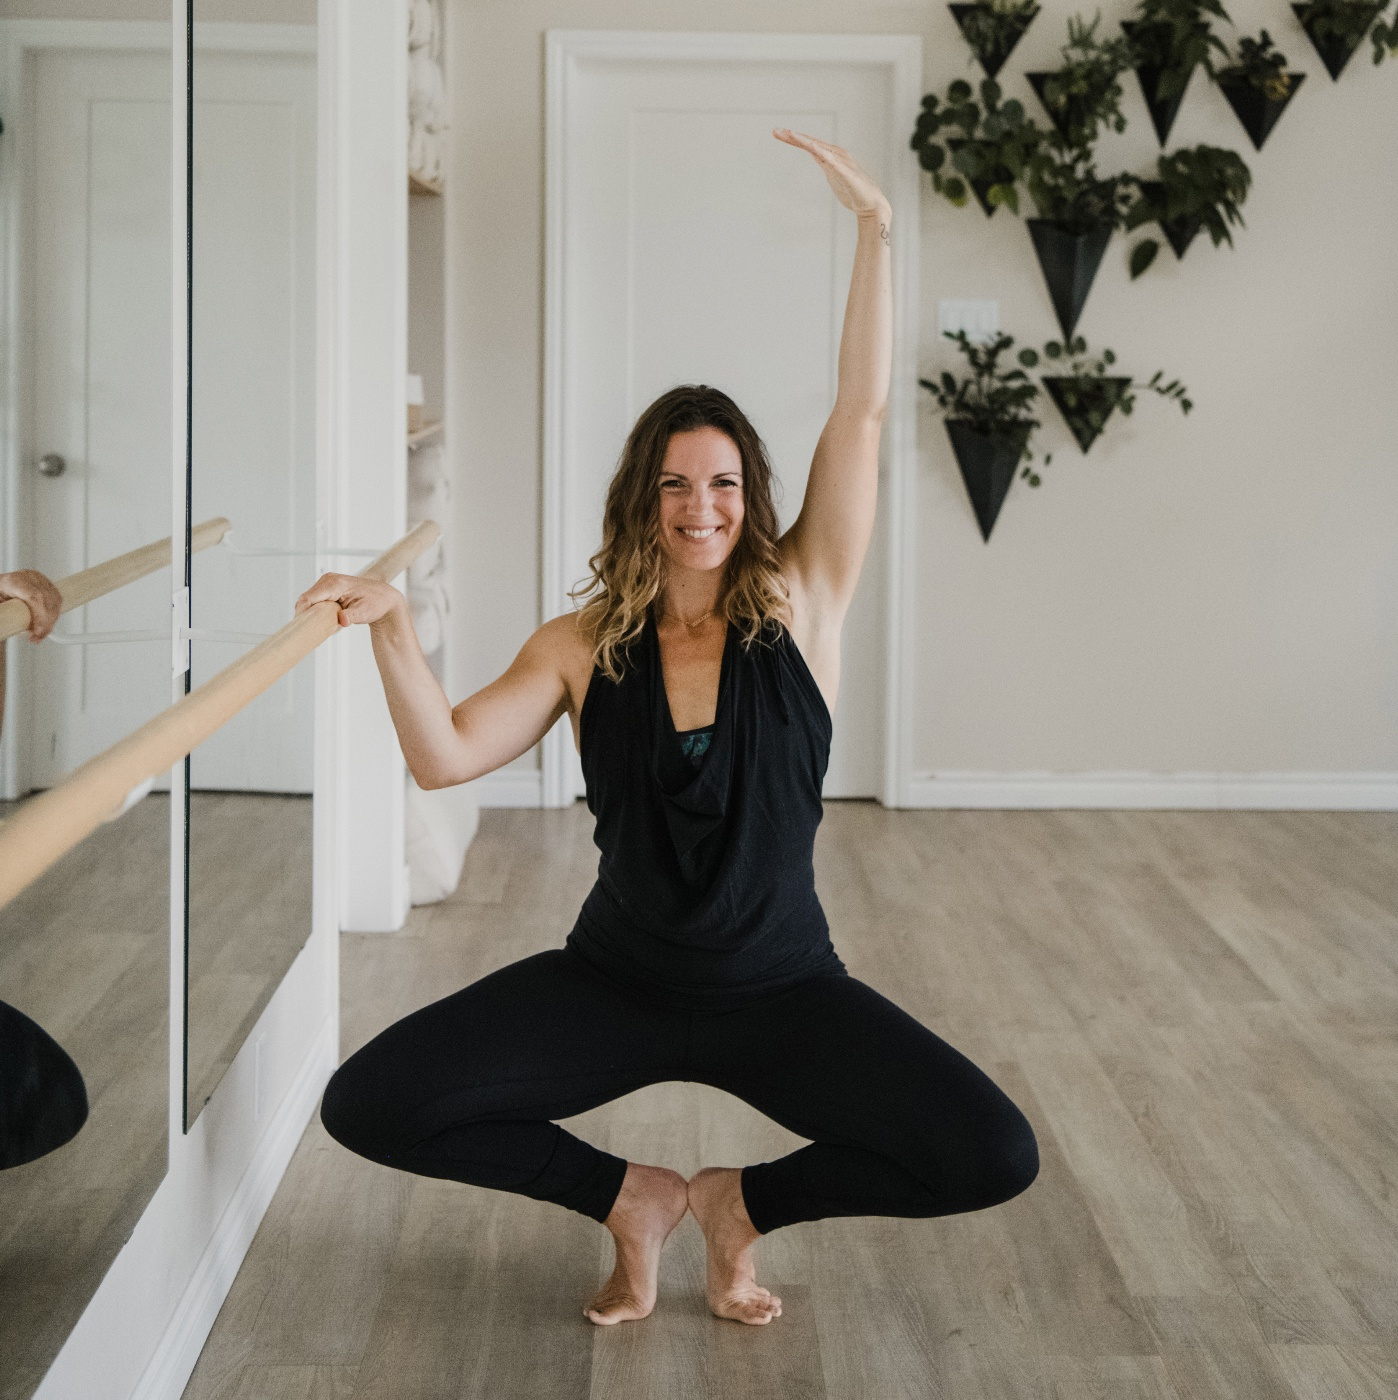 Bobcaygeon Barre Workout Classes with Ally Boothroyd 1